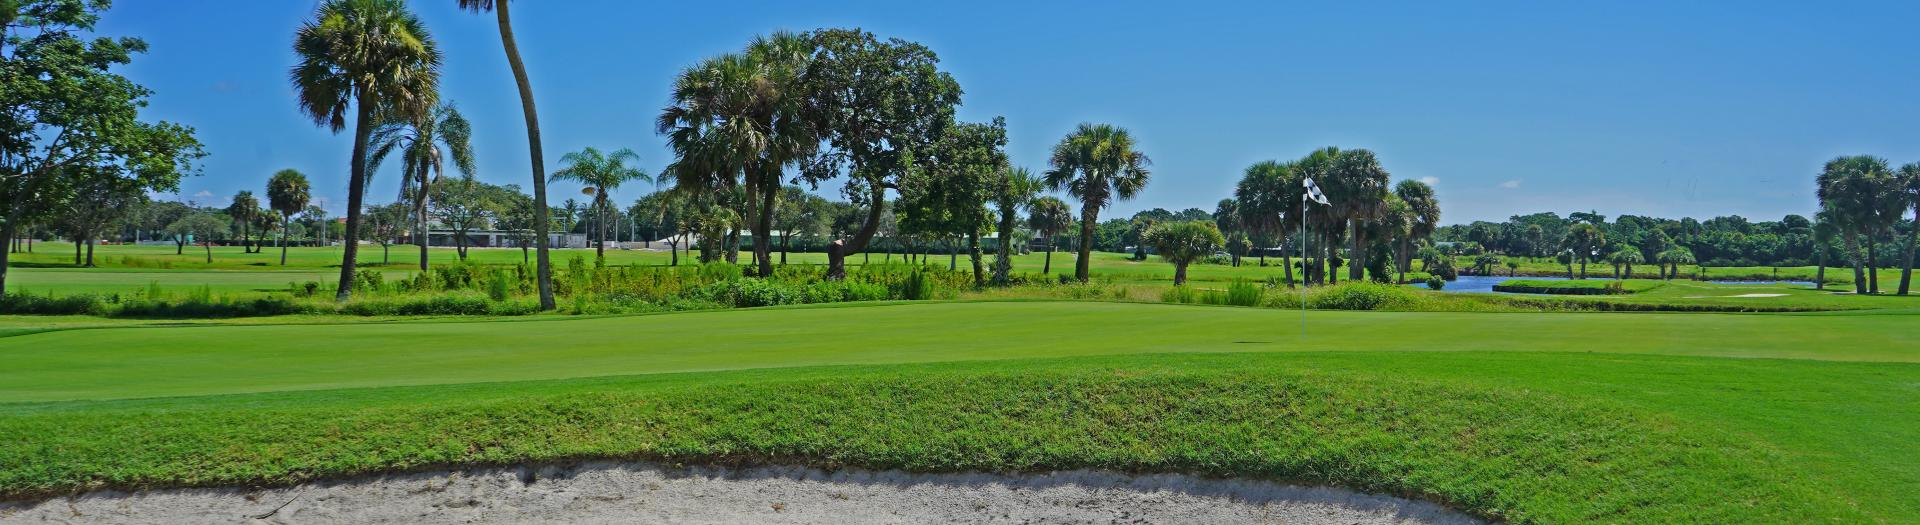 Reversible 9-Hole Course at Sailfish Sands Golf Course